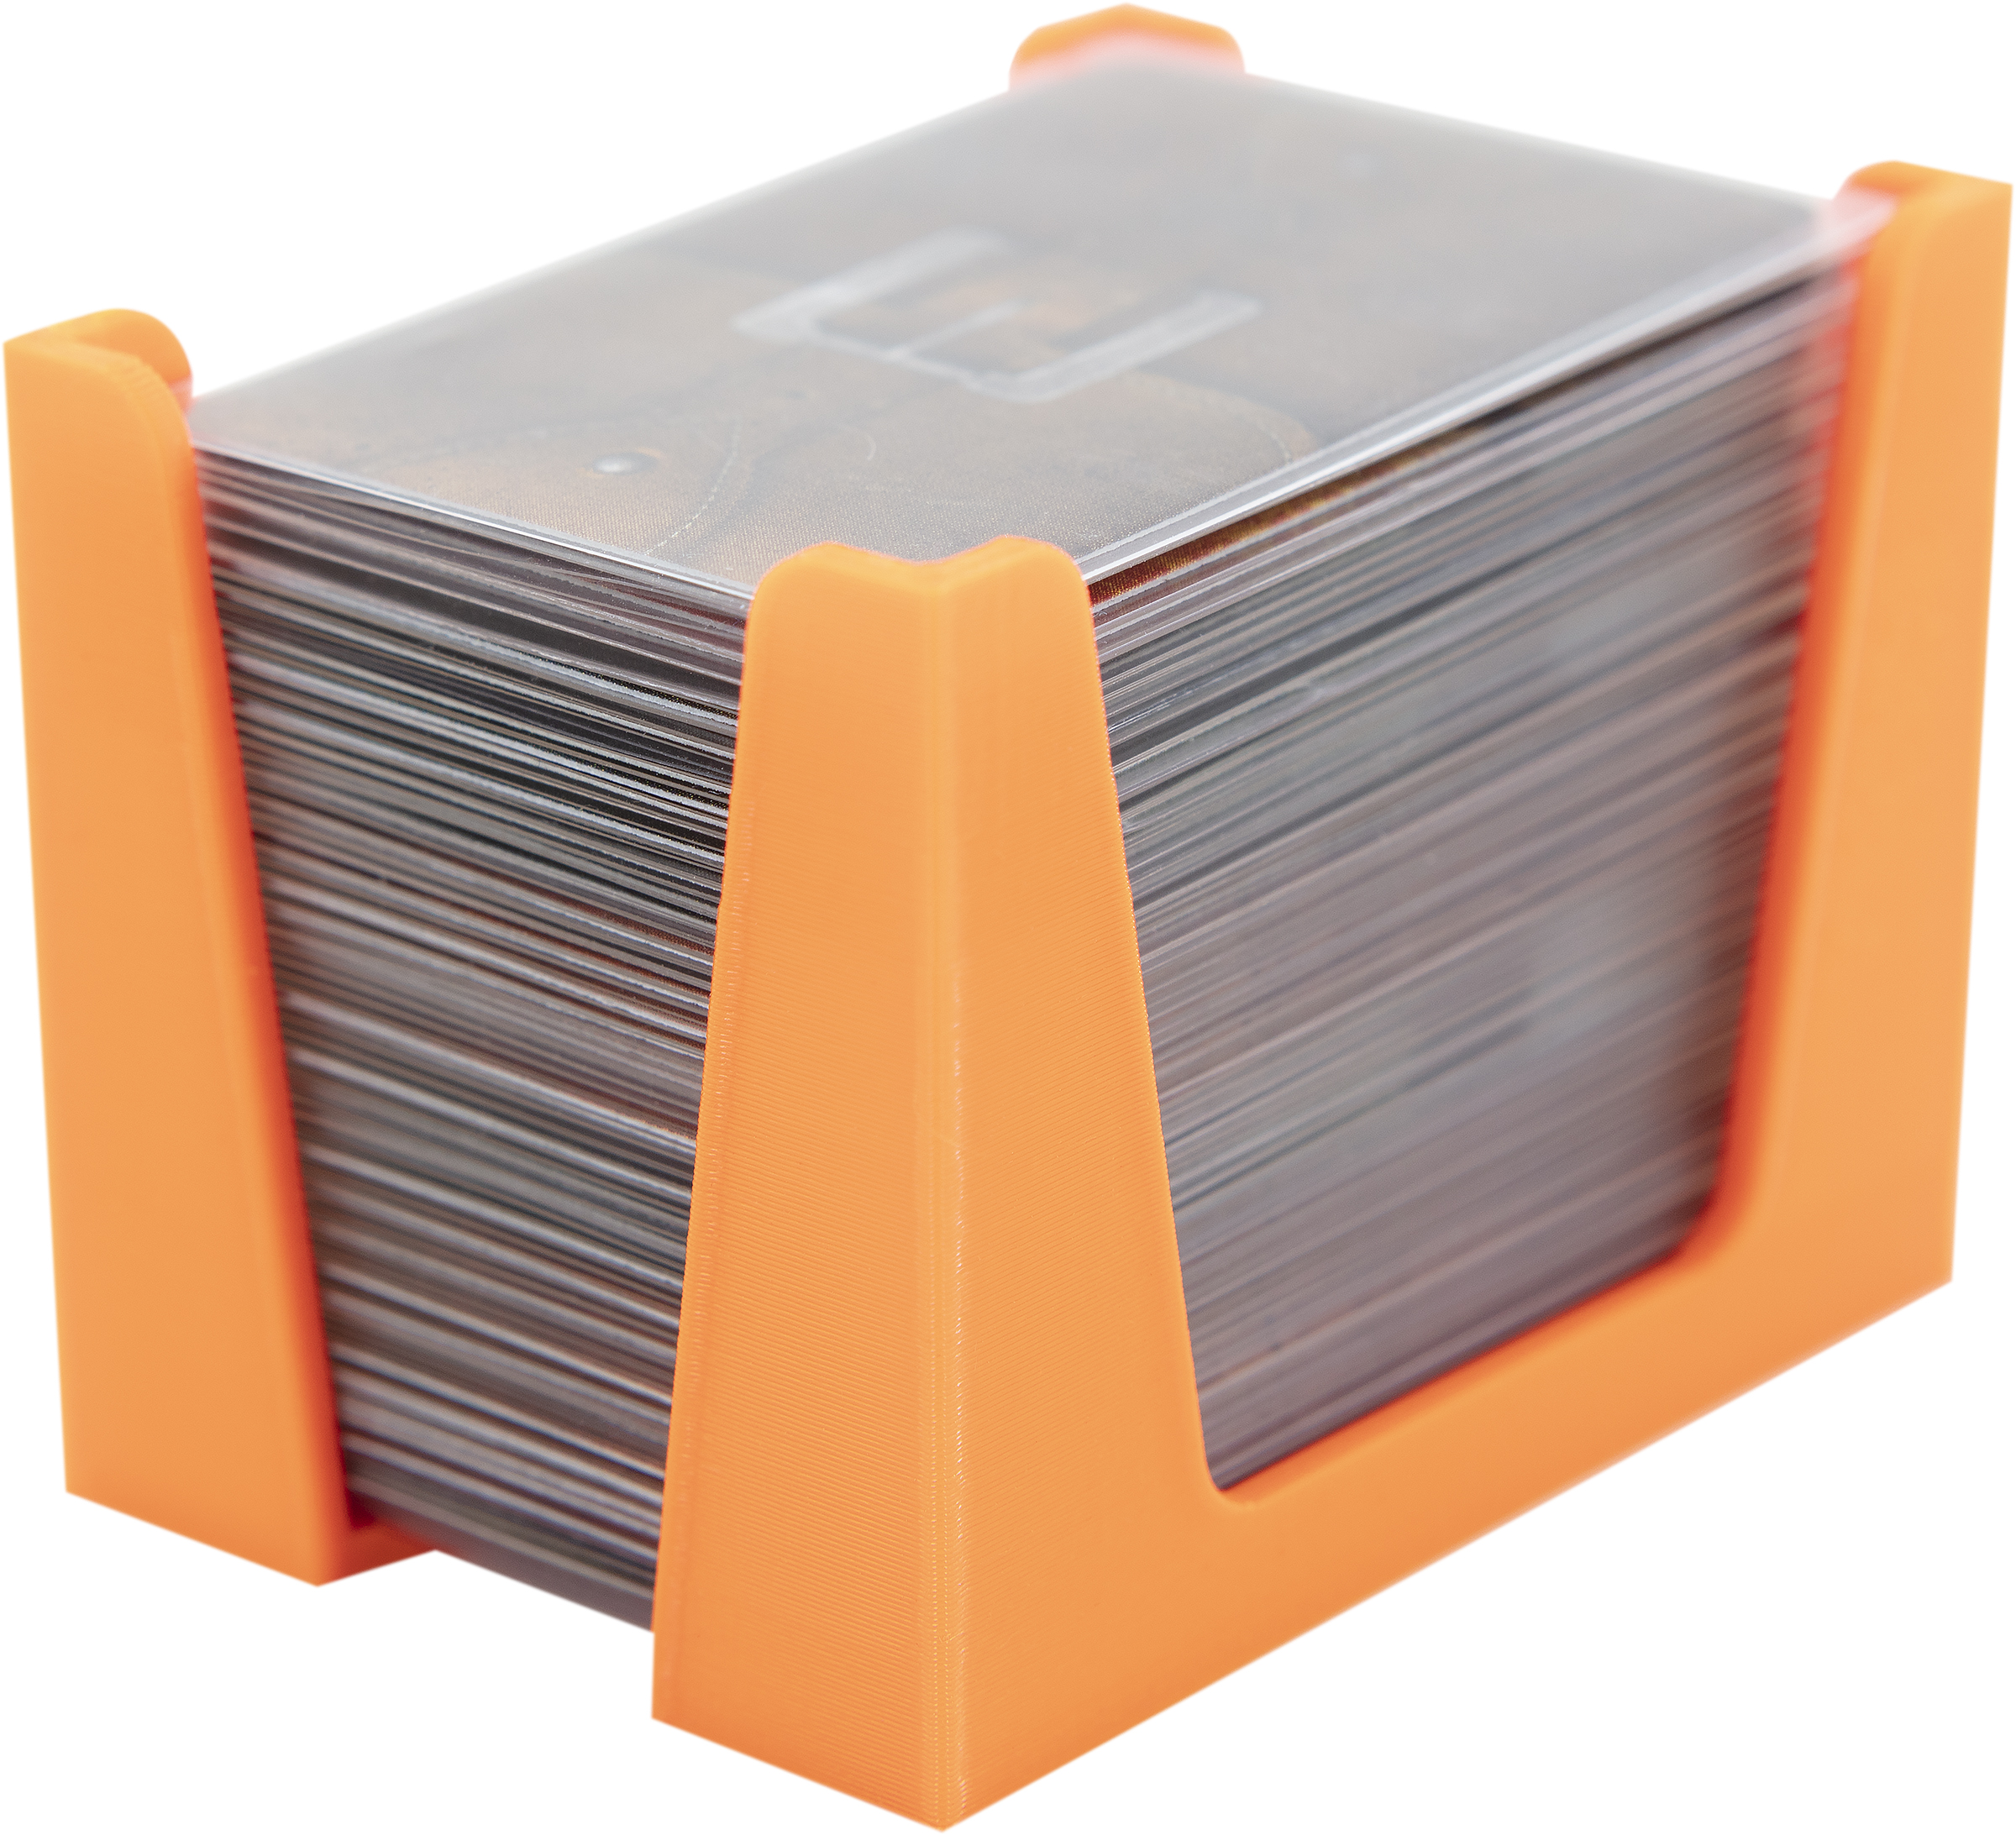 Feldherr Card Holder for game cards in Mini American Board Game Size - 150 cards - 1 tray